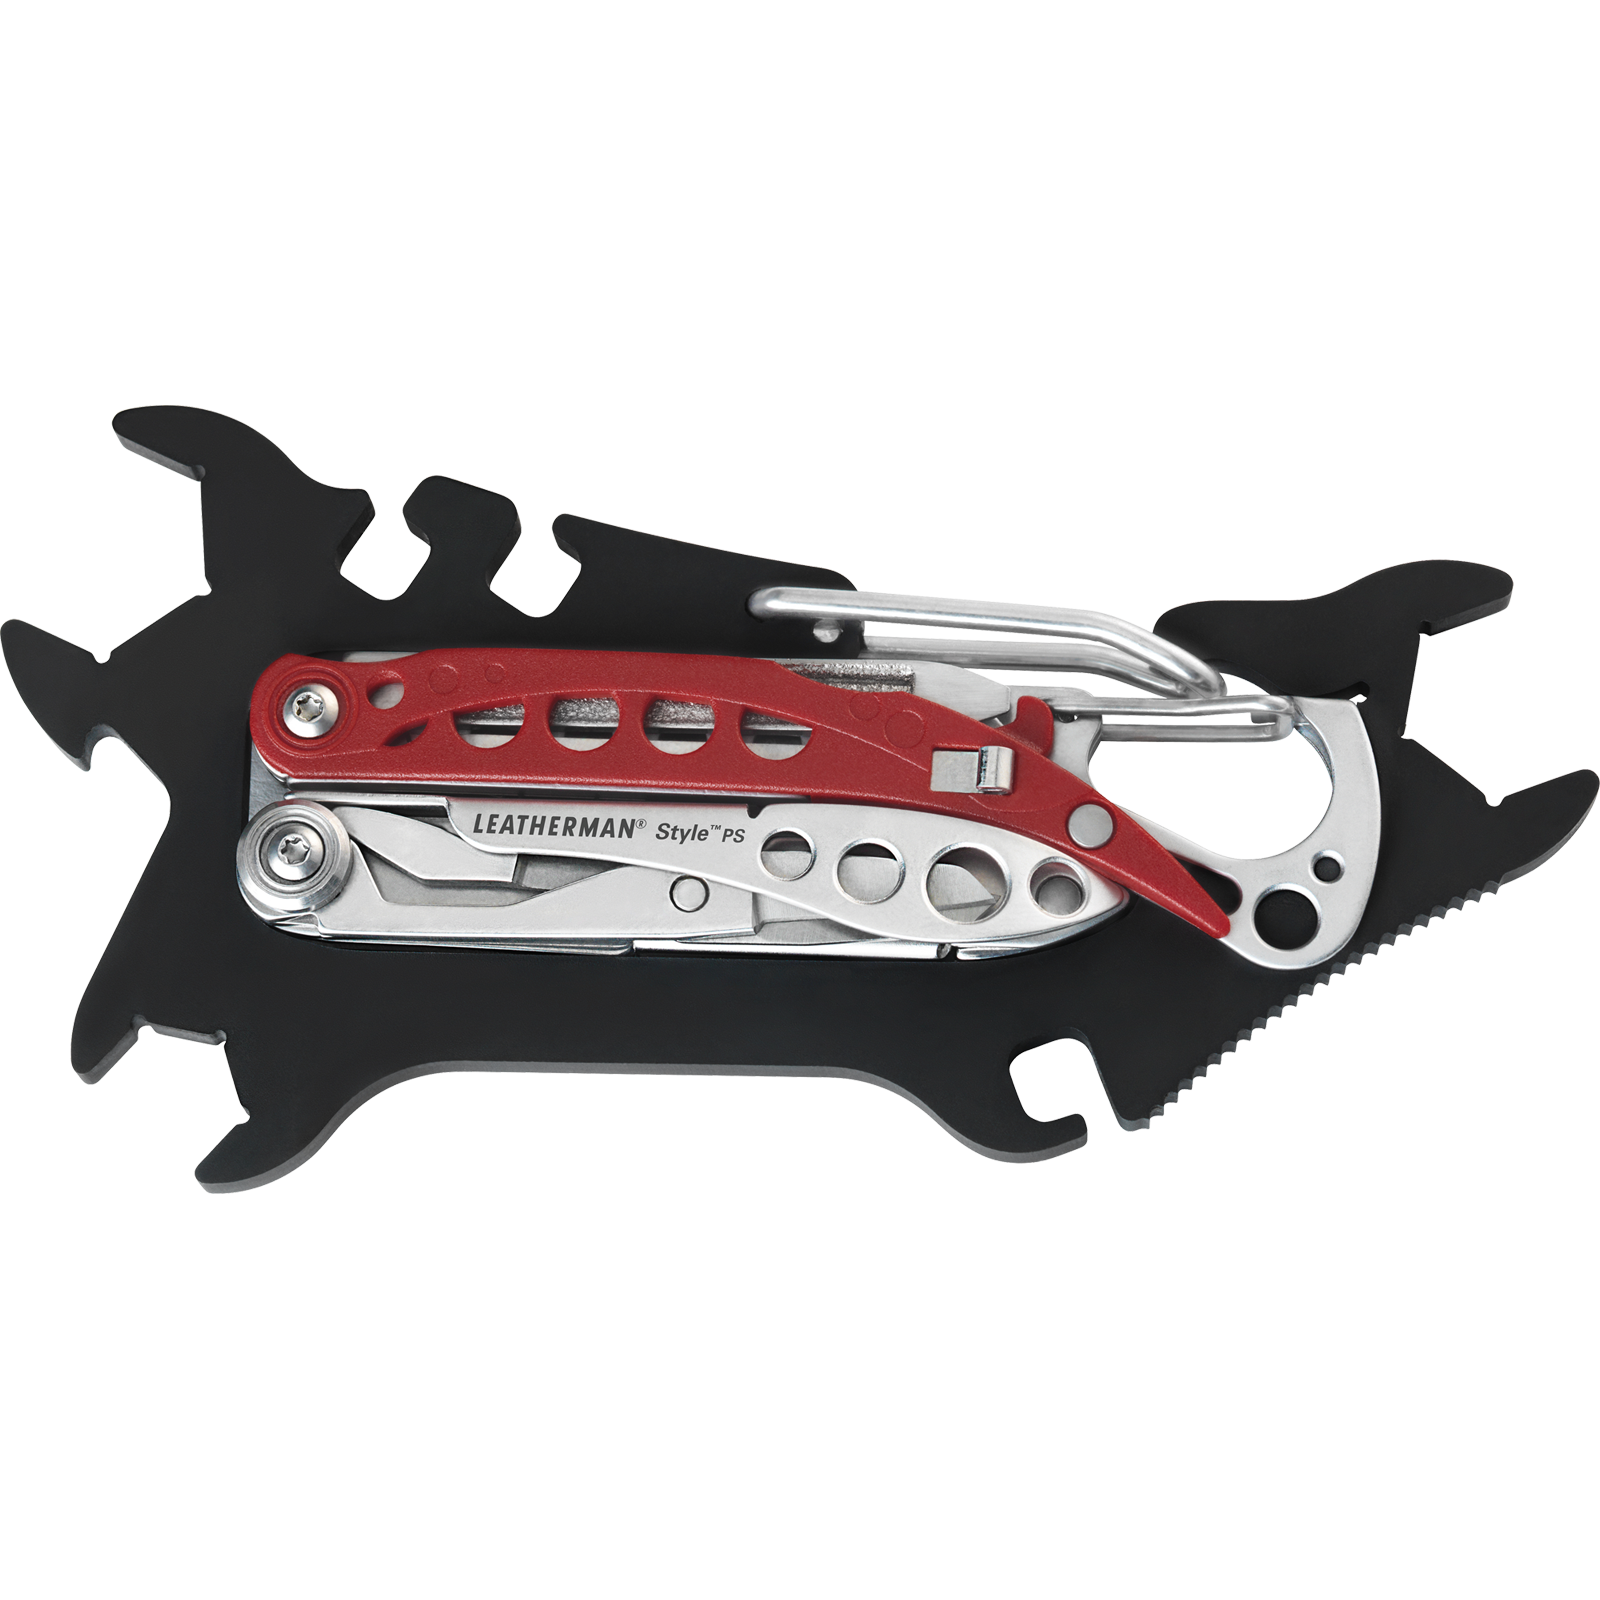 LEATHERMAN JAM & STYLE PS SKATE TOOL BLK/SIL/RED